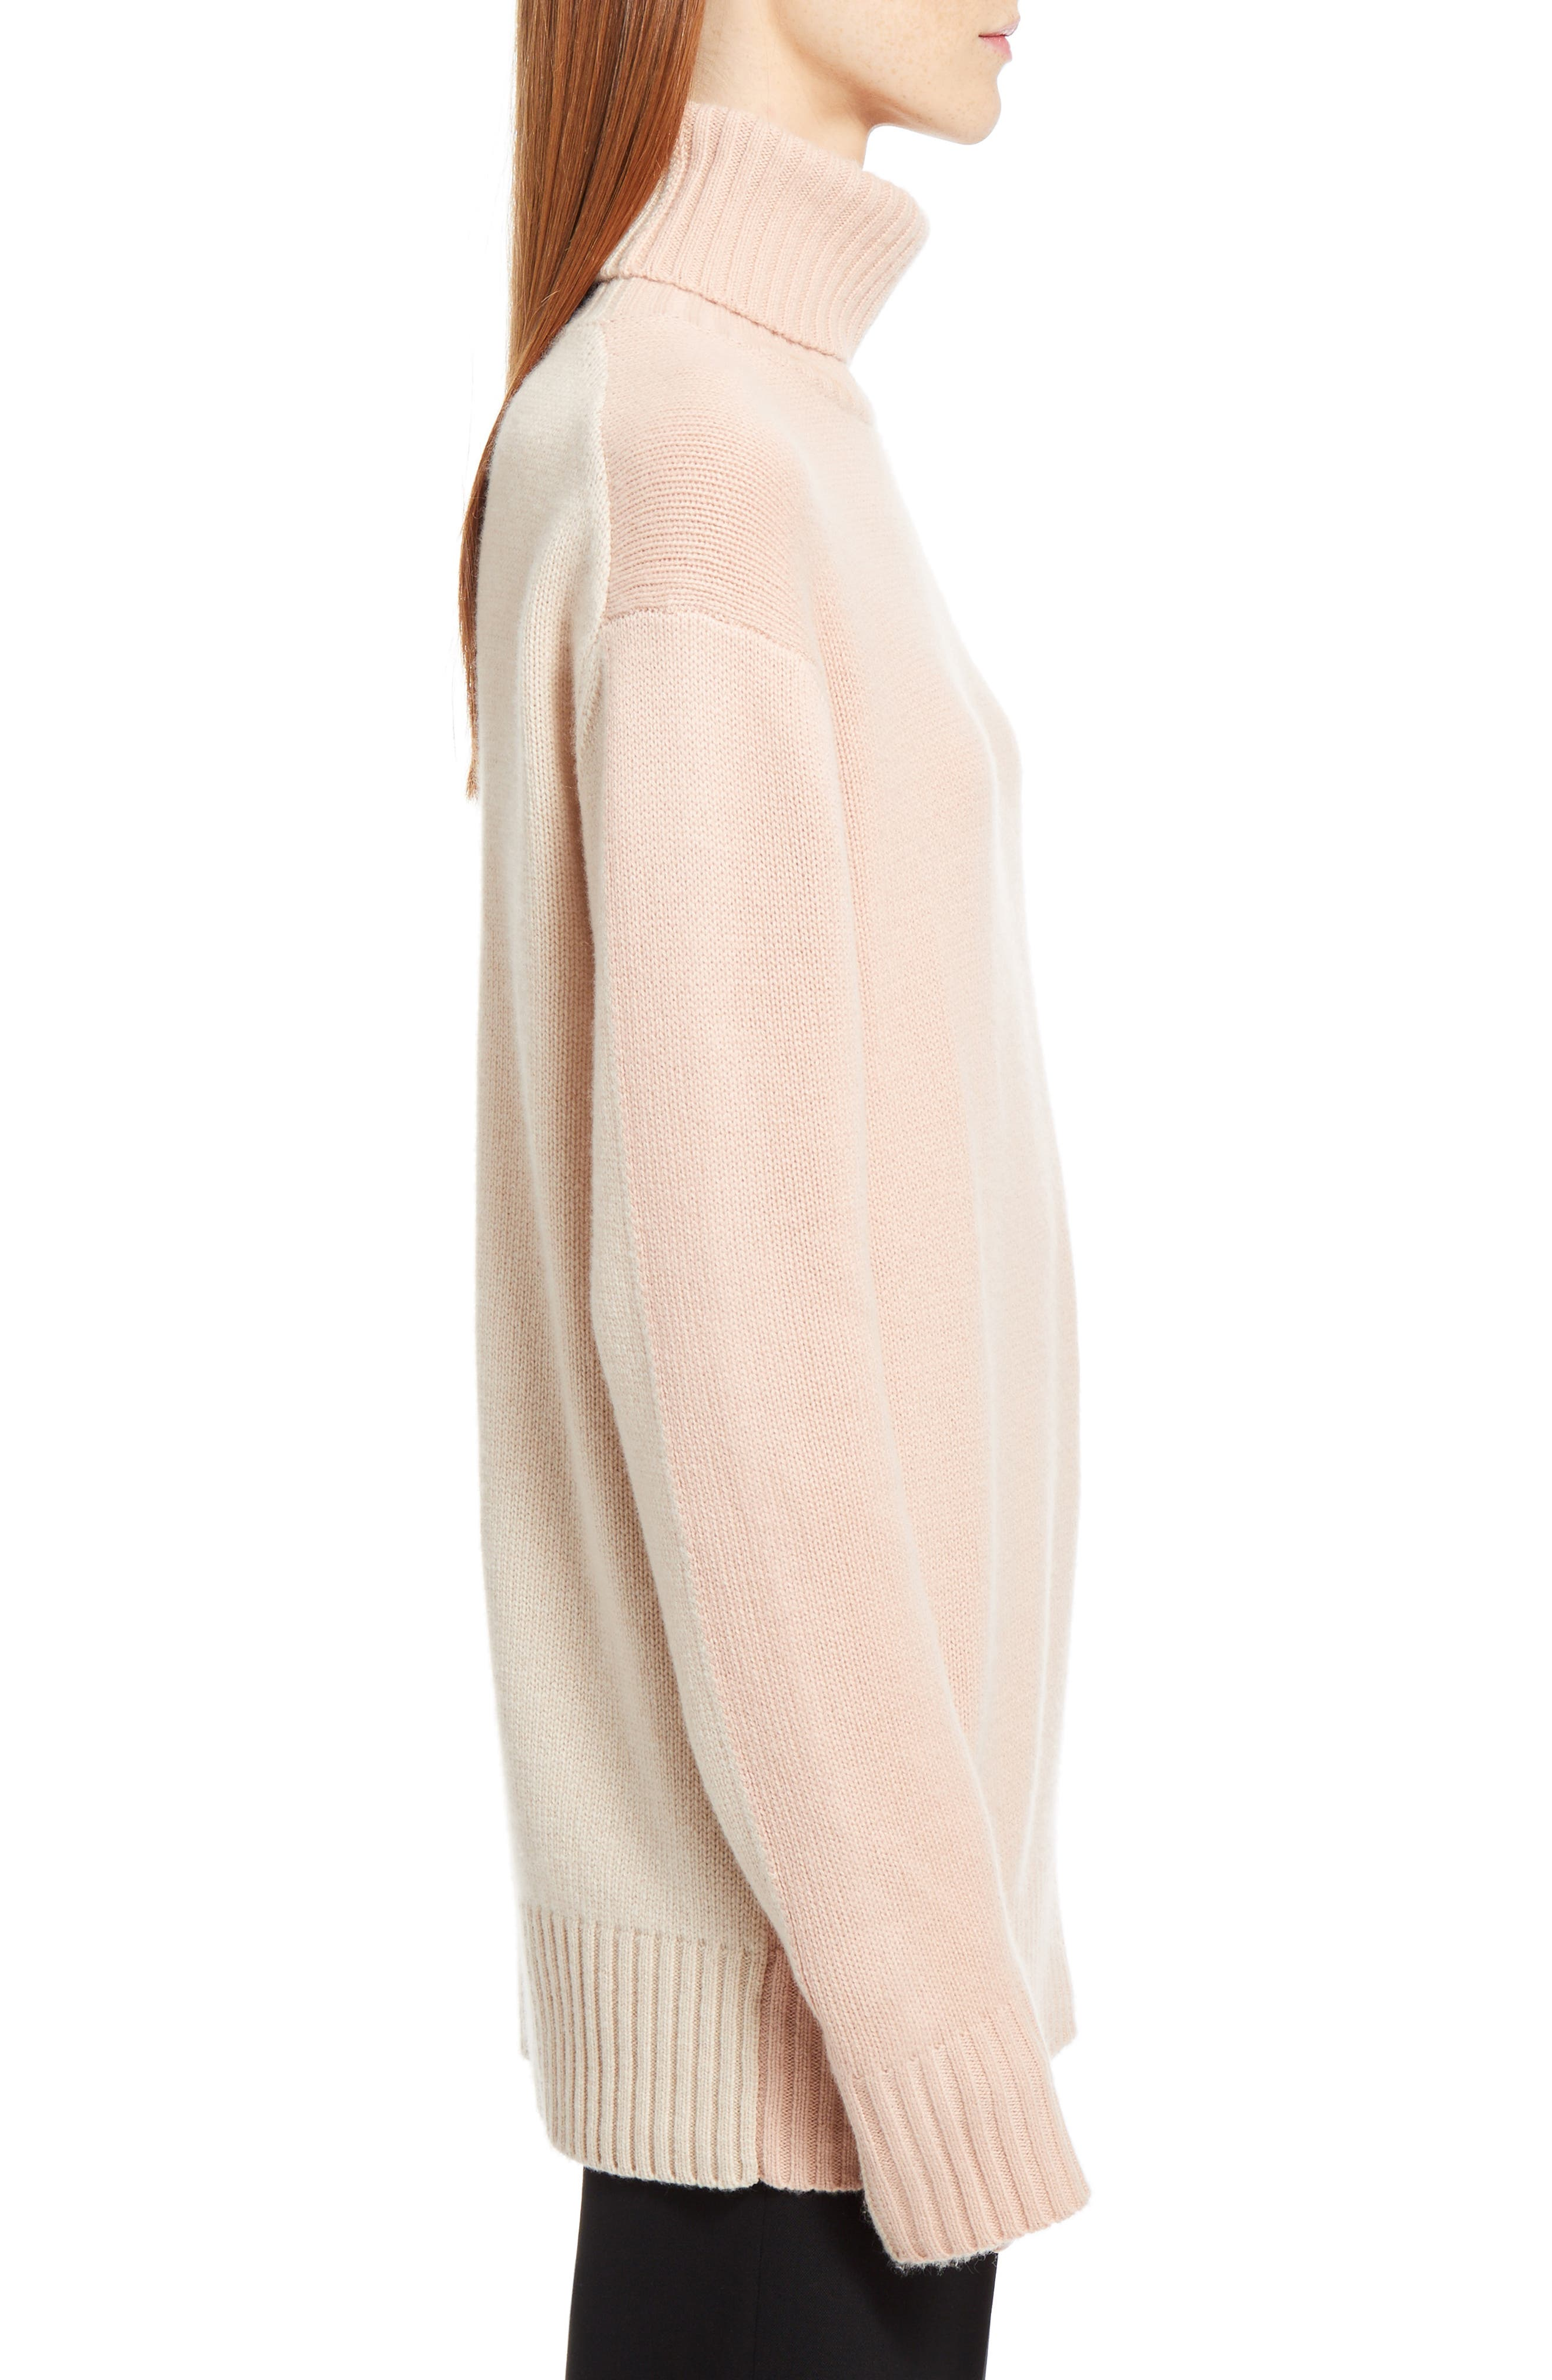 Colorblock Cashmere Turtleneck Sweater,                             Alternate thumbnail 4, color,                             Pink/ Beige